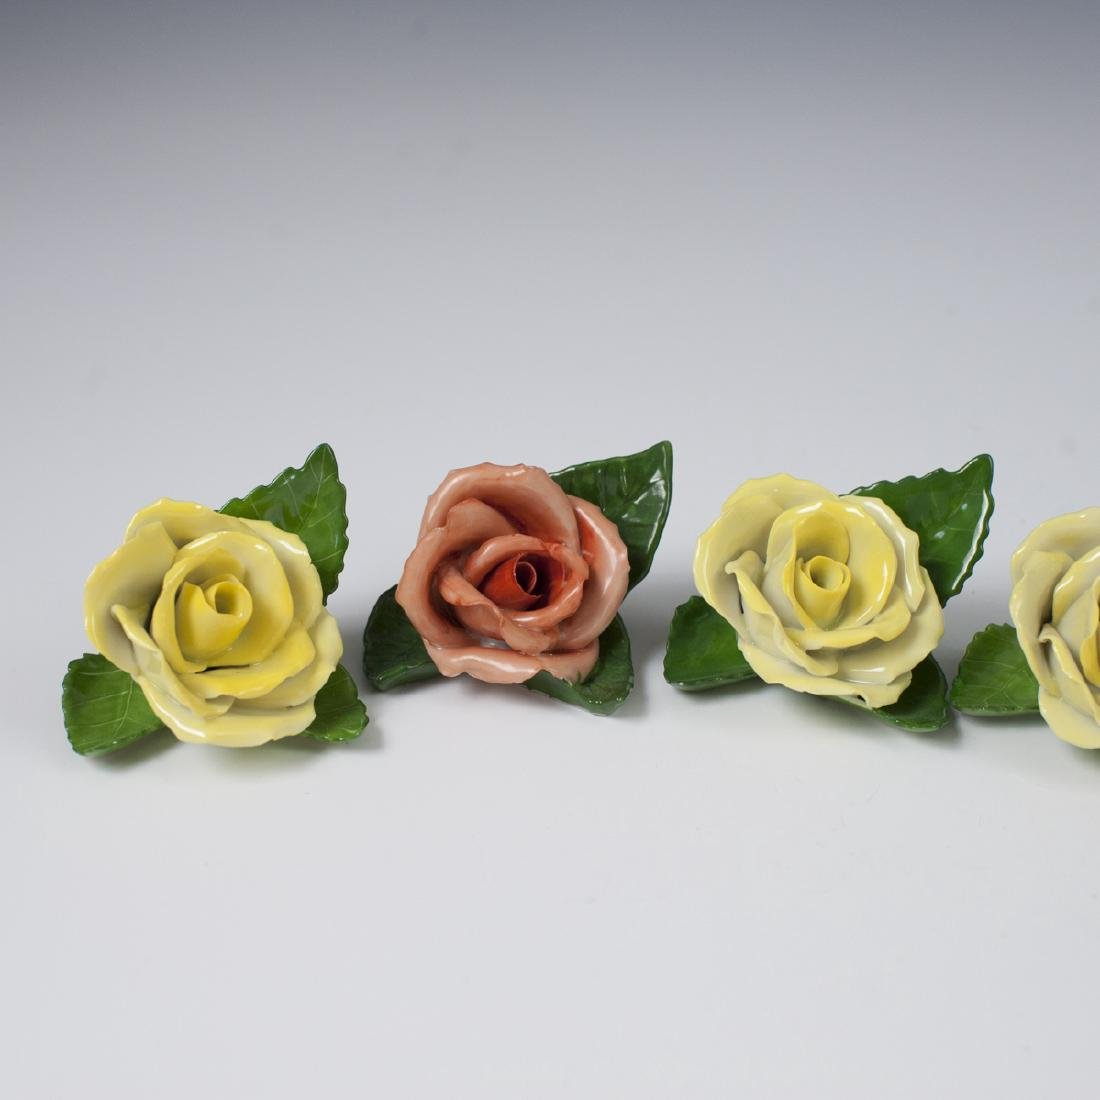 Herend Porcelain Rose Place Card Holders - 2